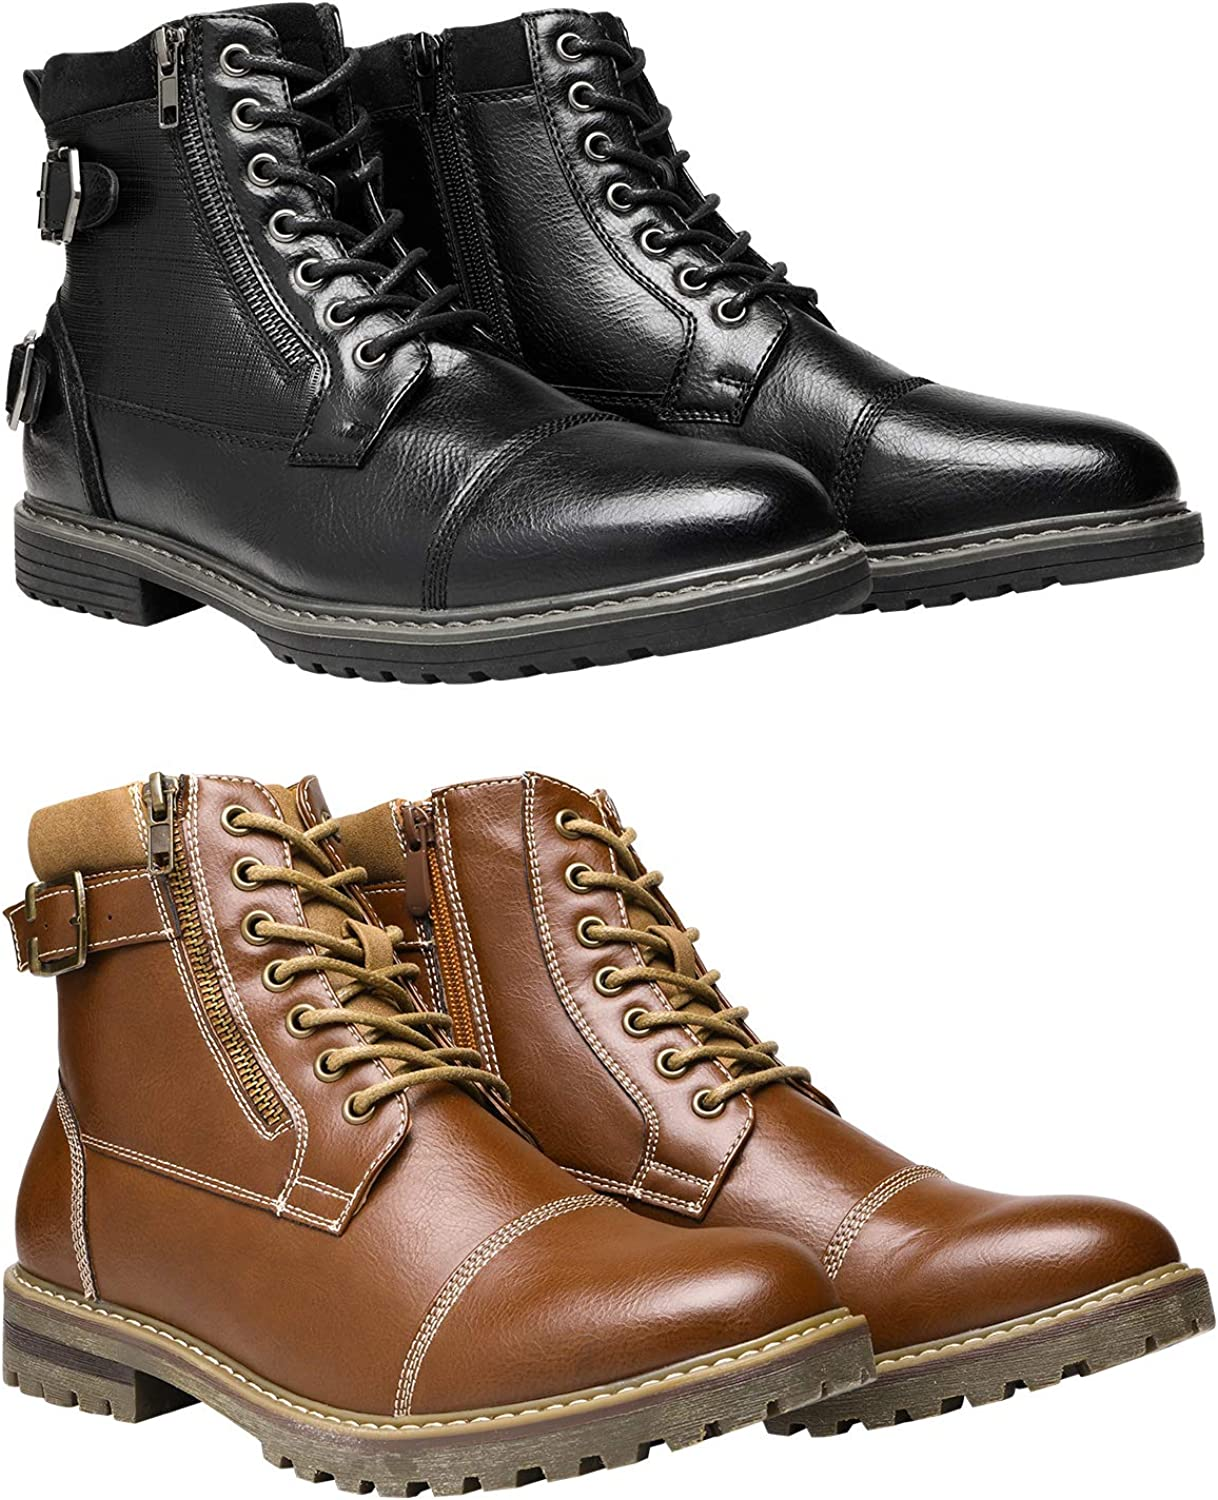 Bruno Marc Men's Motorcycle Boots Bundle with Men's Oxford Boots Size 10